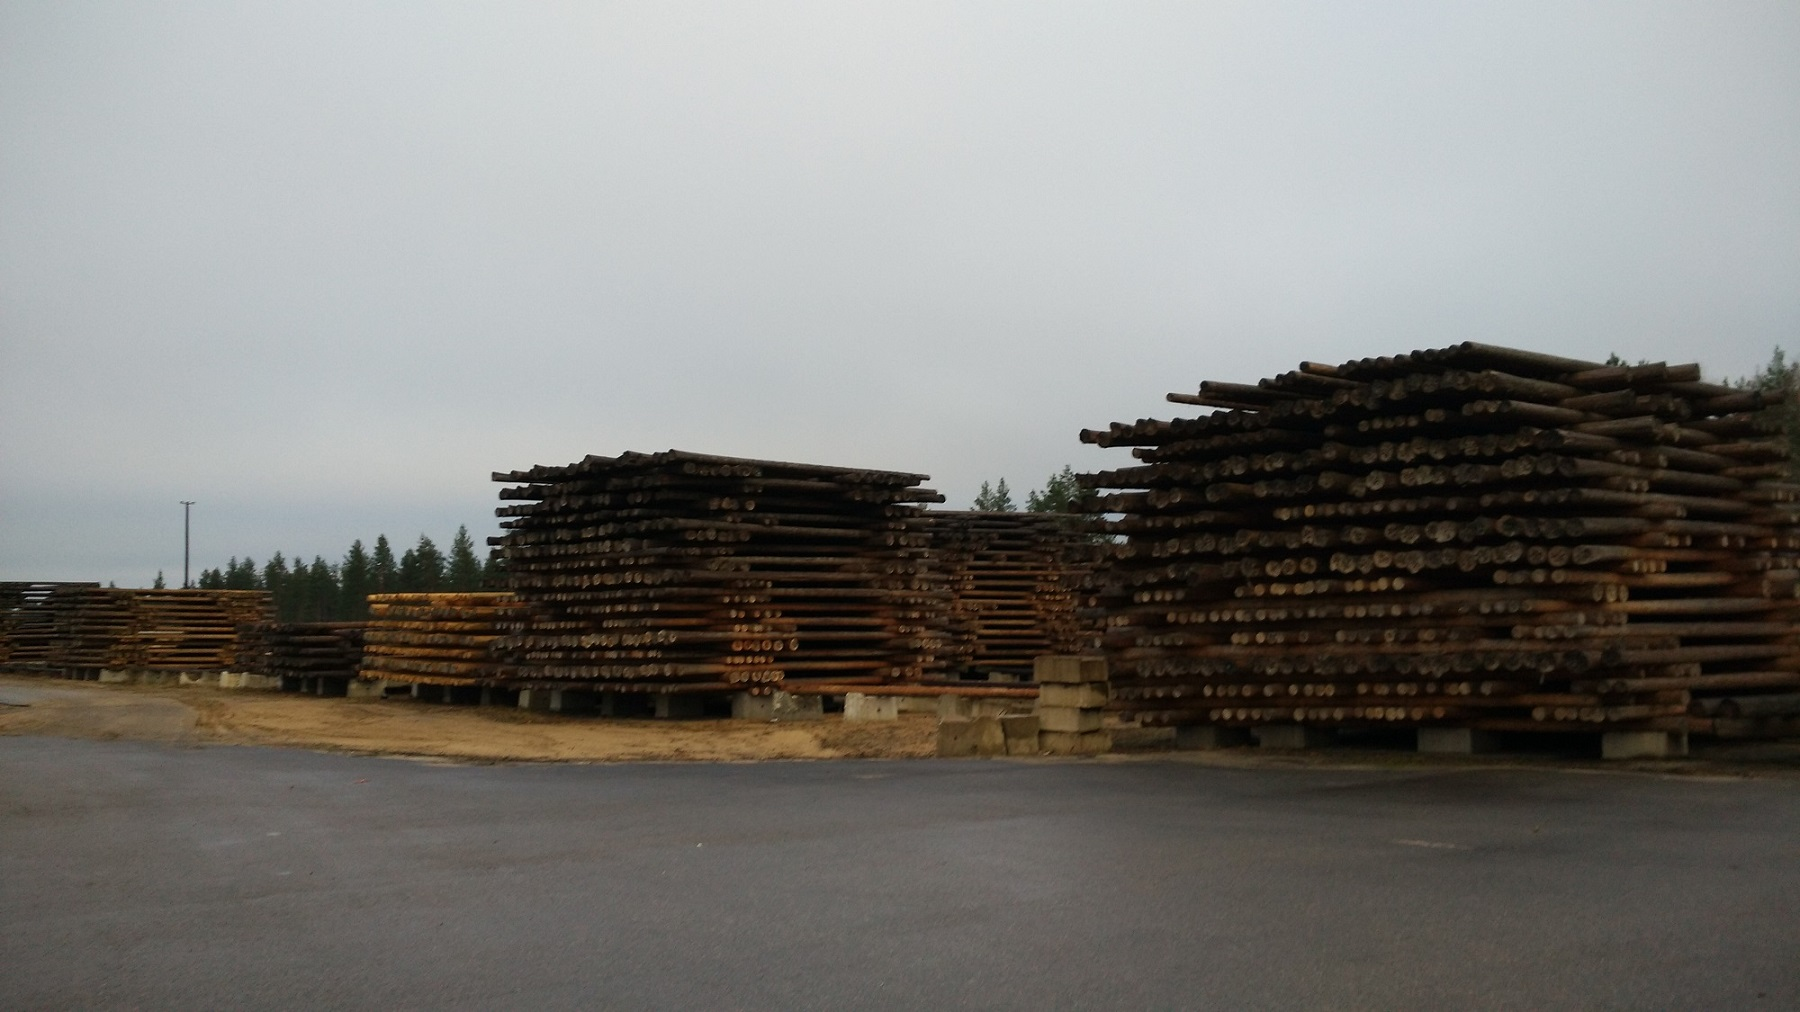 Wooden poles with creosote